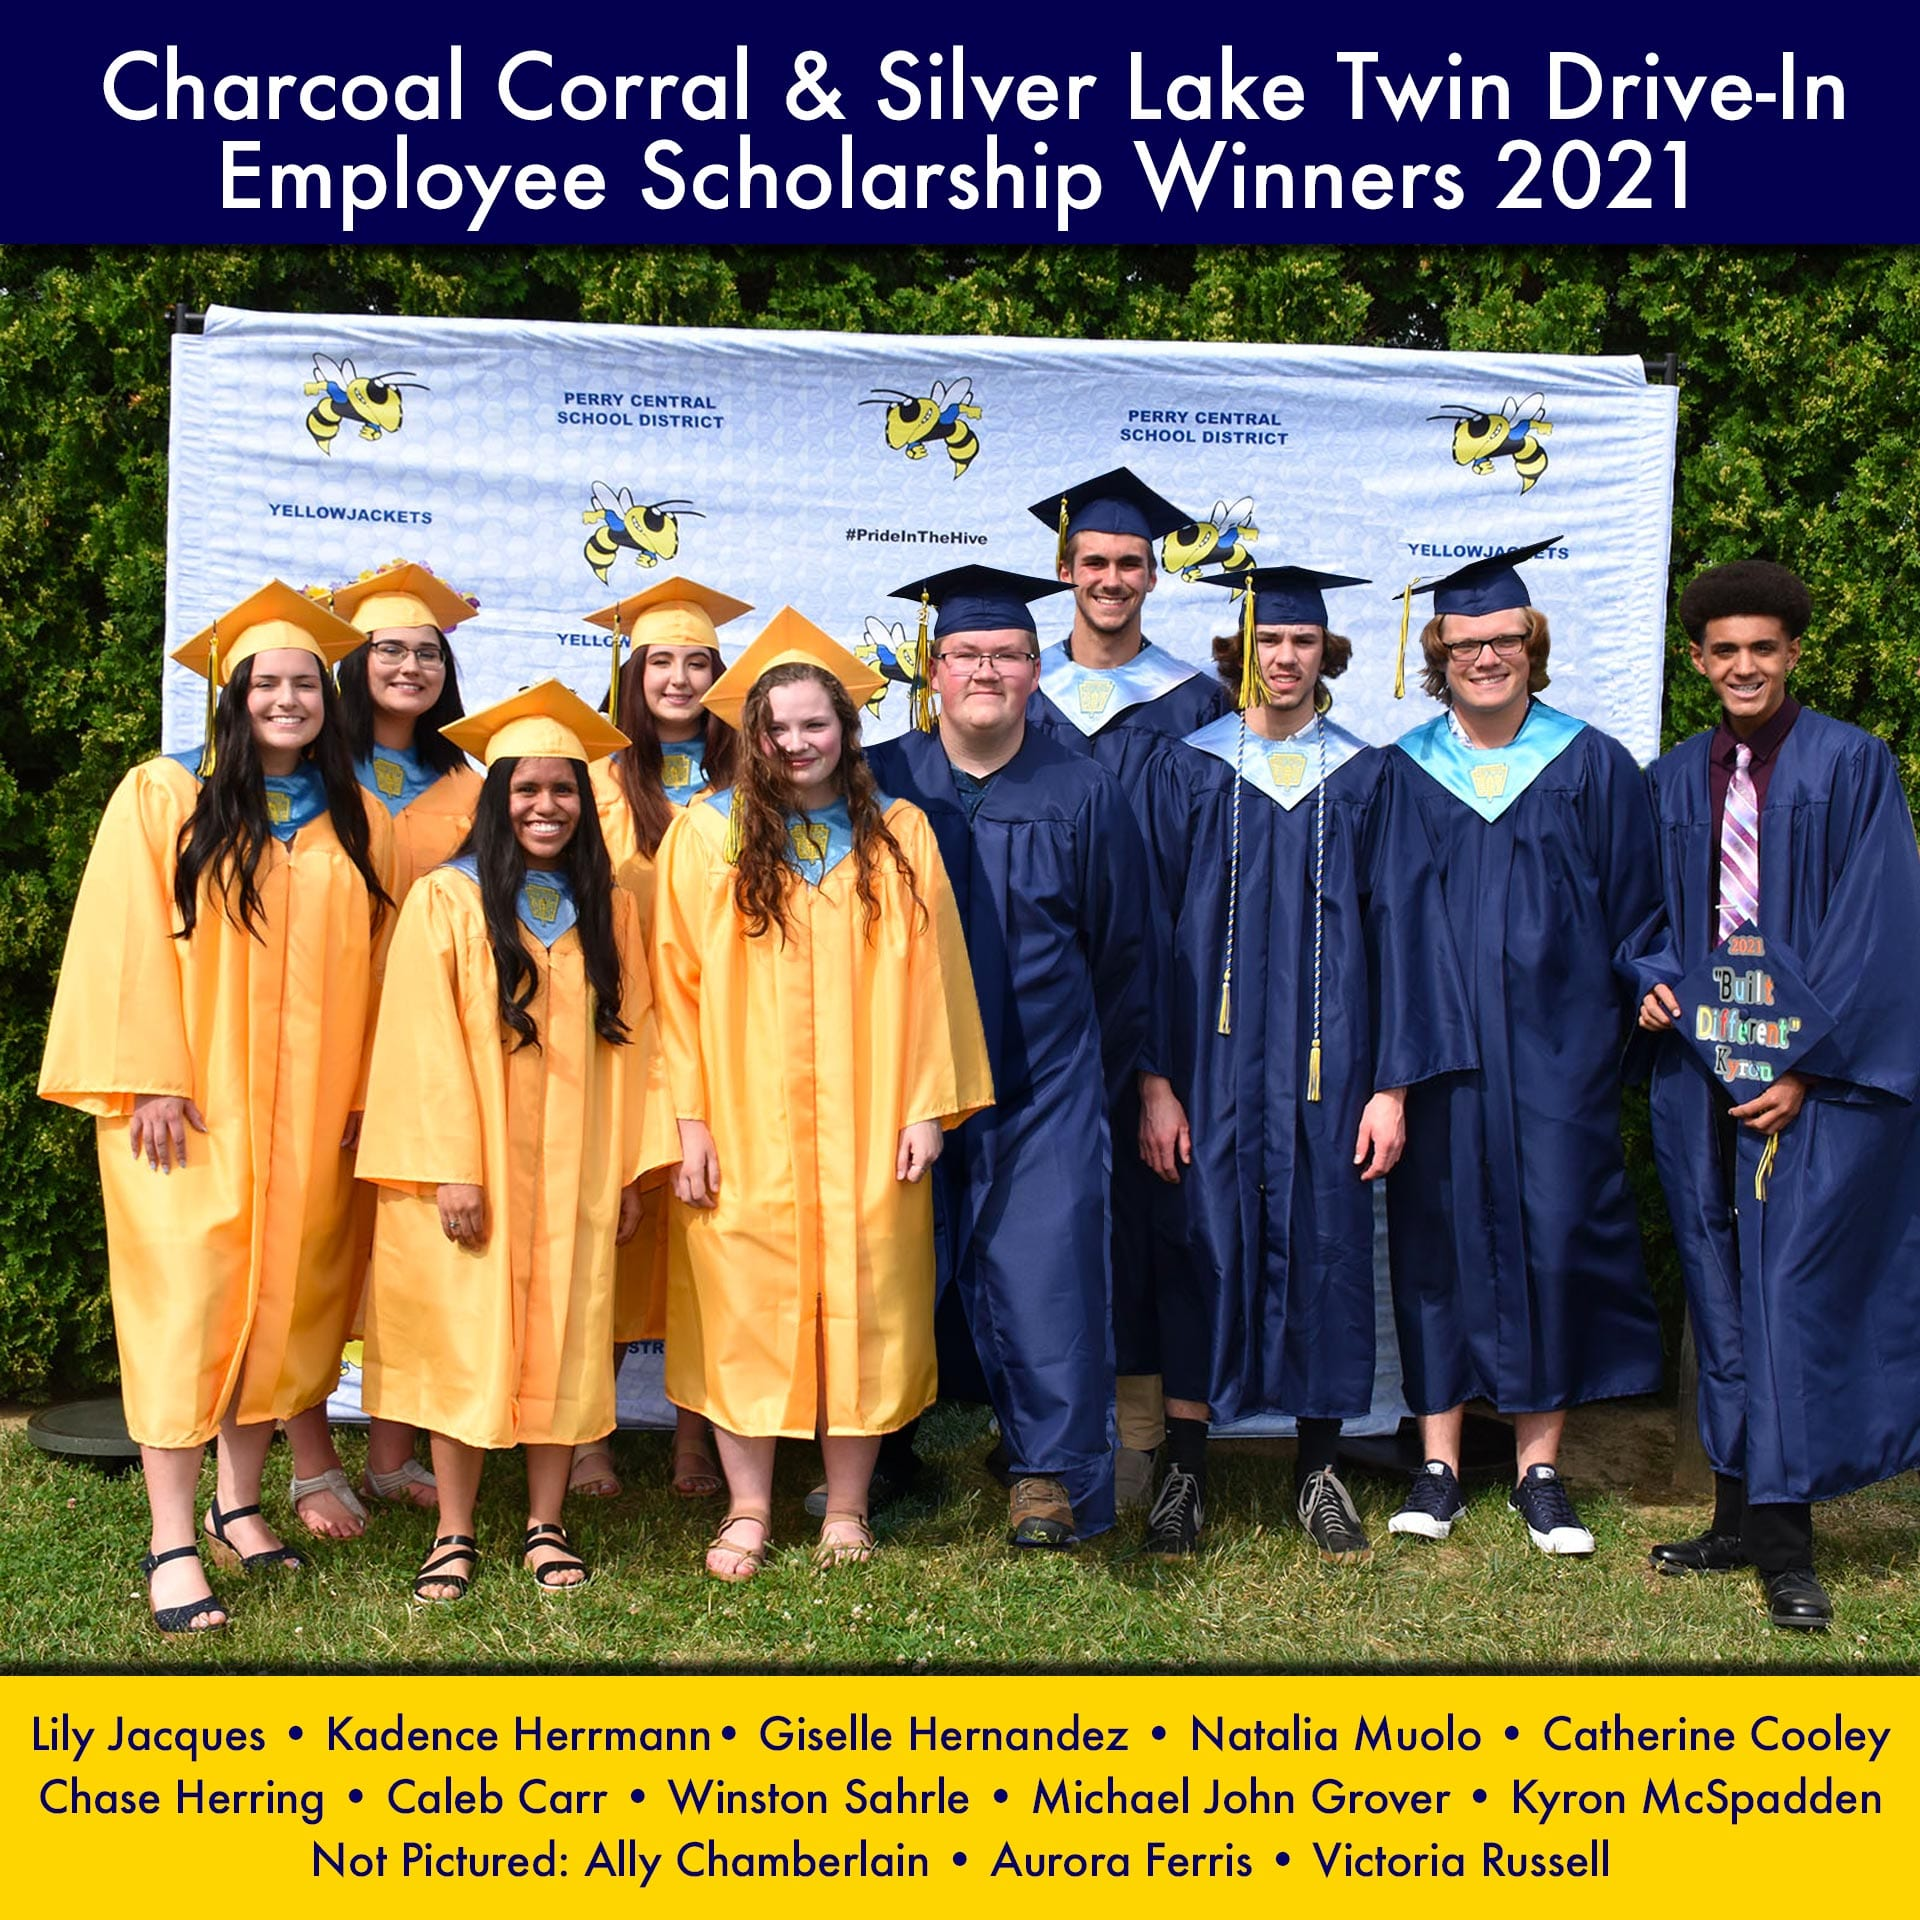 Congratulations to the ... Charcoal Corral & Silver Lake Twin Drive-InEmployee Scholarship Winners 2021 Lily Jacques • Kadence Herrmann• Giselle Hernandez • Natalia Muolo • Catherine Cooley Chase Herring • Caleb Carr • Winston Sahrle • Michael John Grover • Kyron McSpadden Not Pictured: Ally Chamberlain • Aurora Ferris • Victoria Russell